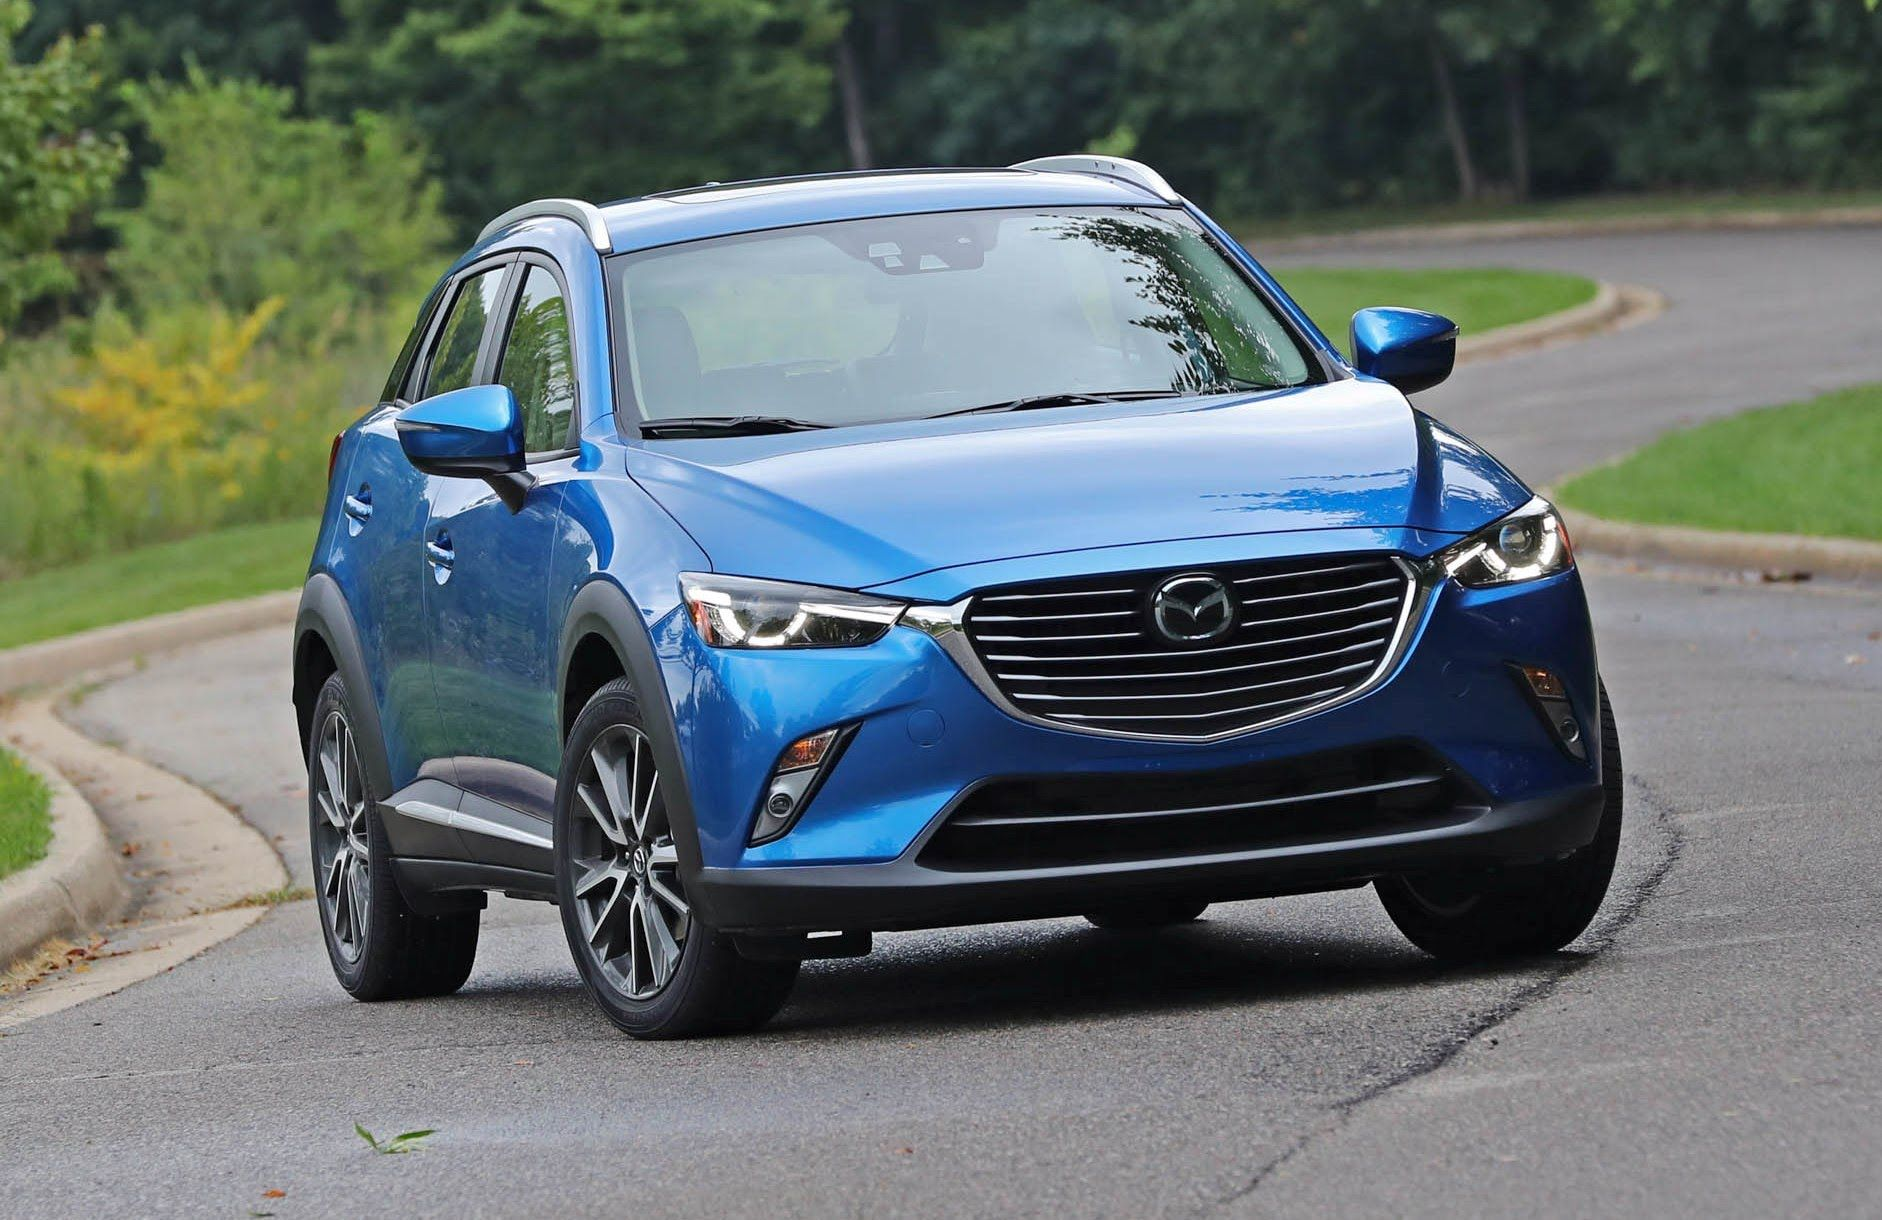 2019 mazda cx 7 changes updates price and release date rumor car rumor mazda pinterest mazda and cars